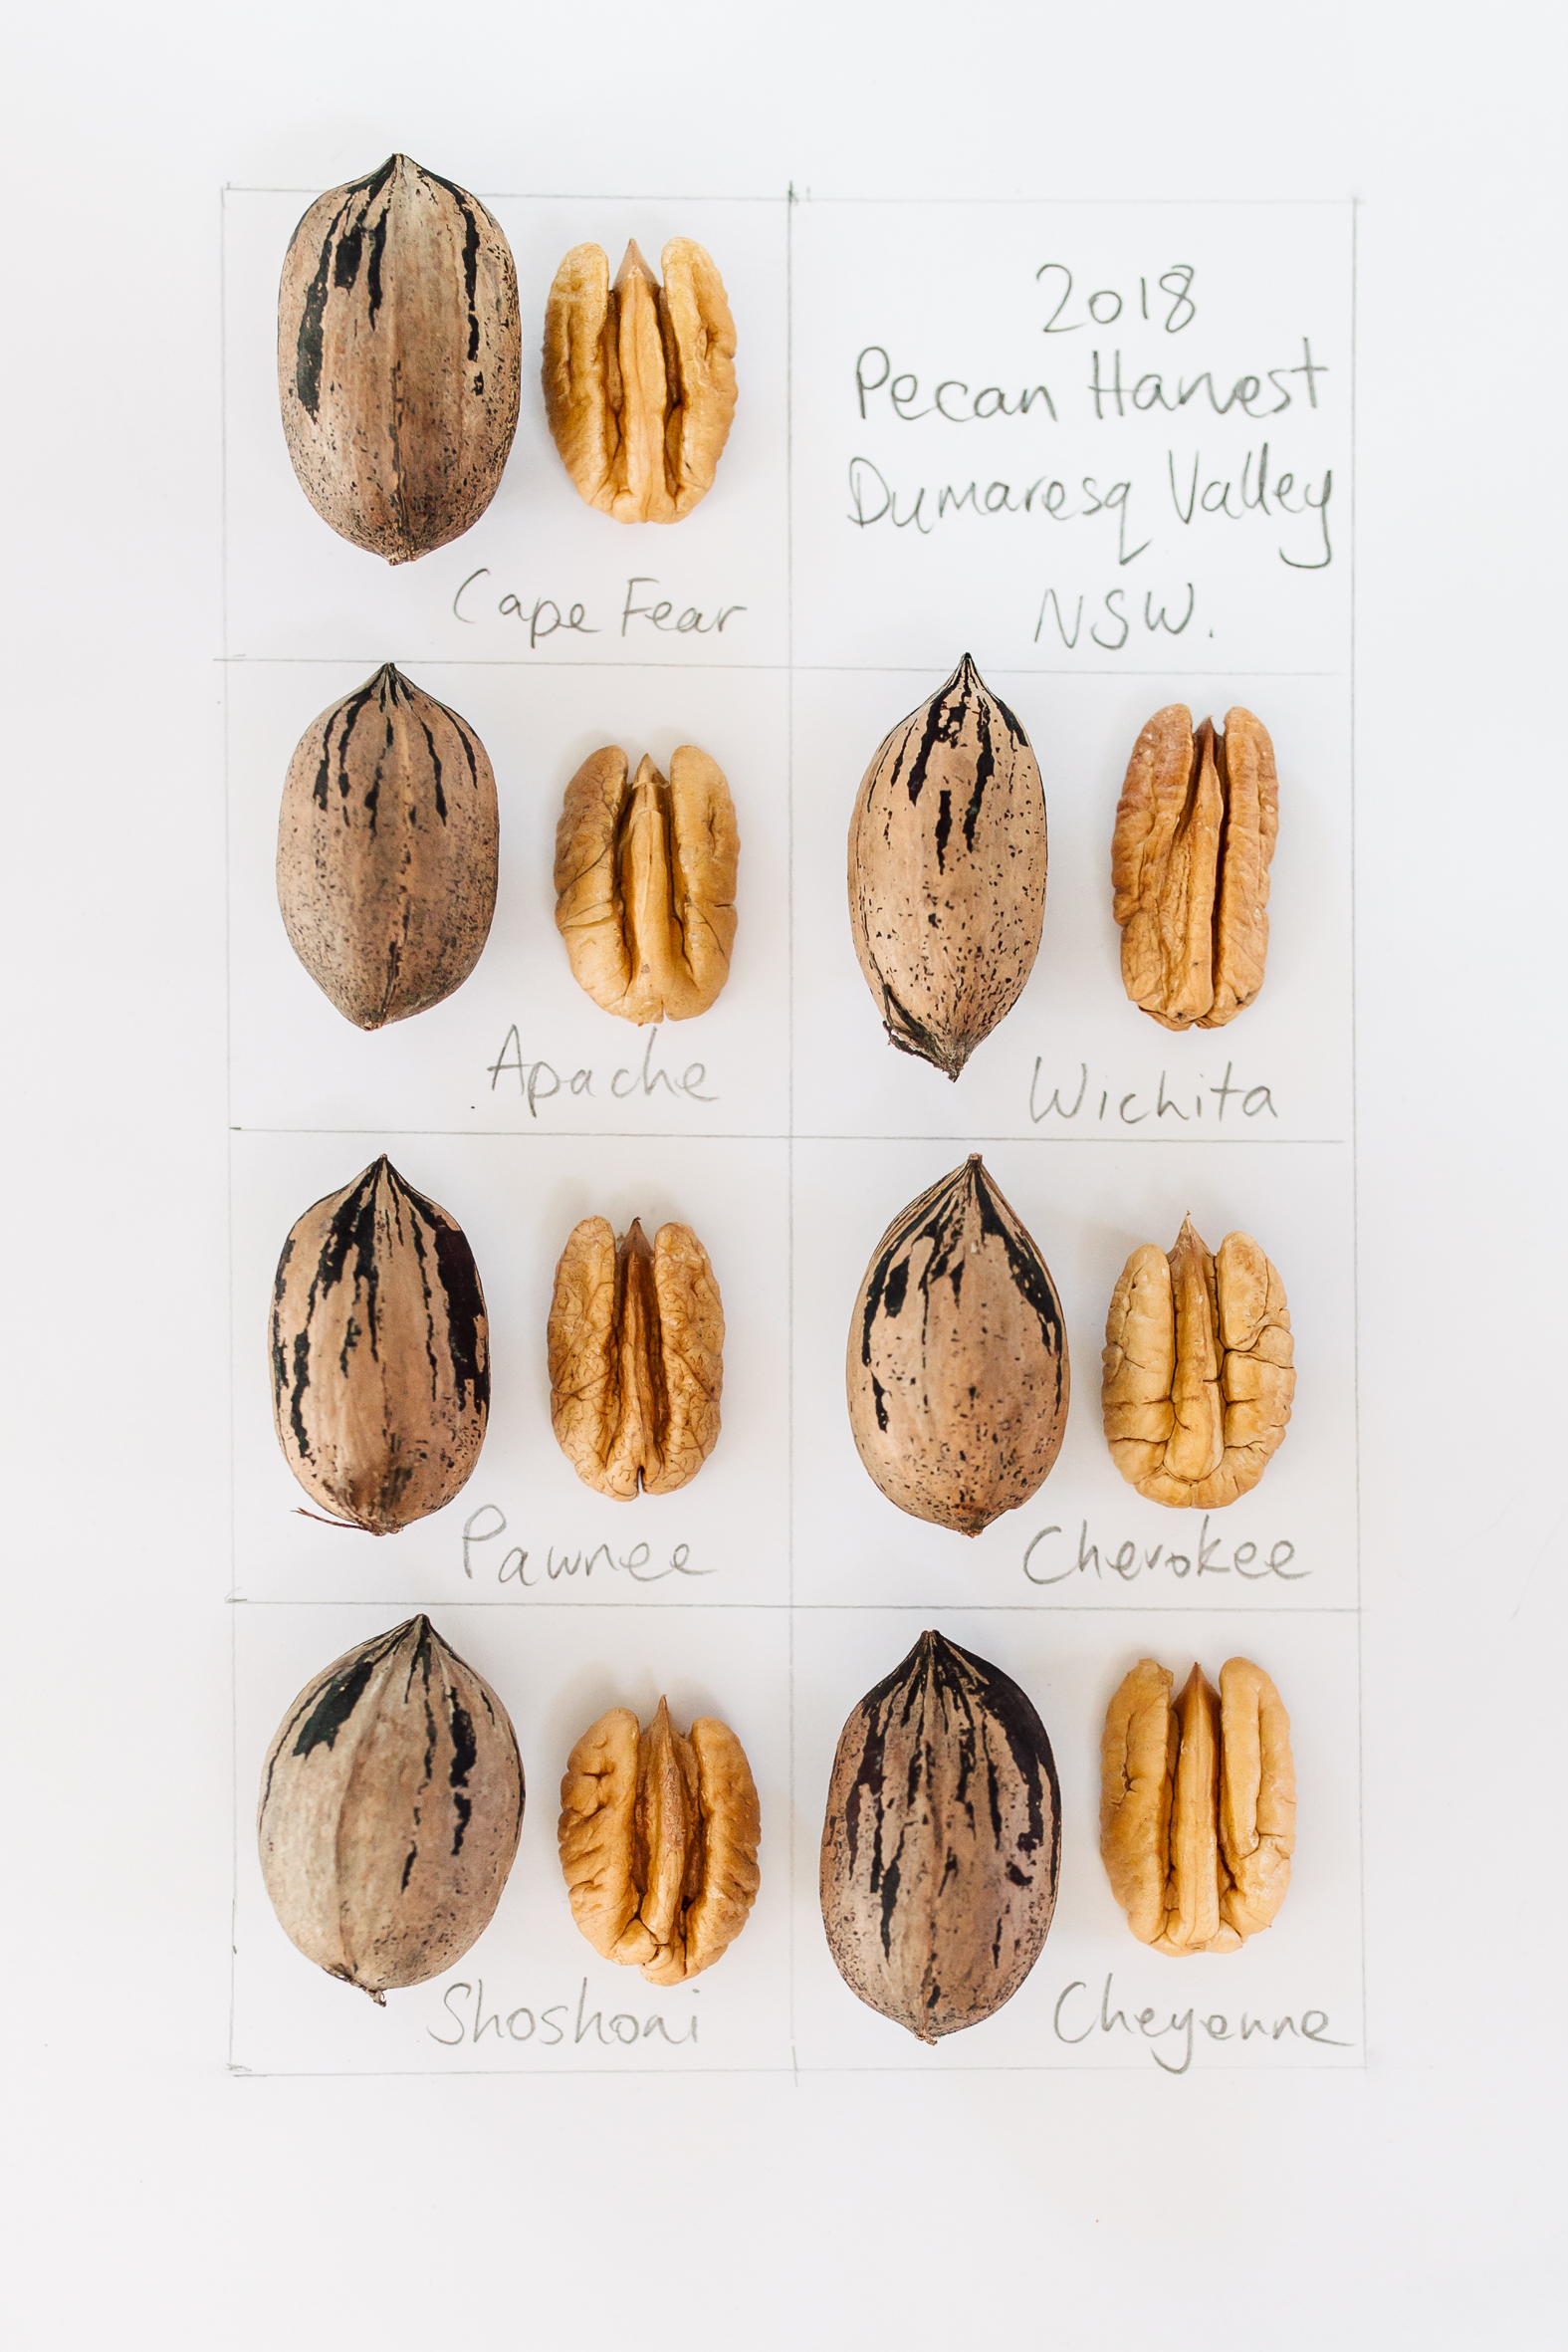 My pecan assignment on this year's harvest, with the different varieties grown on our farm.